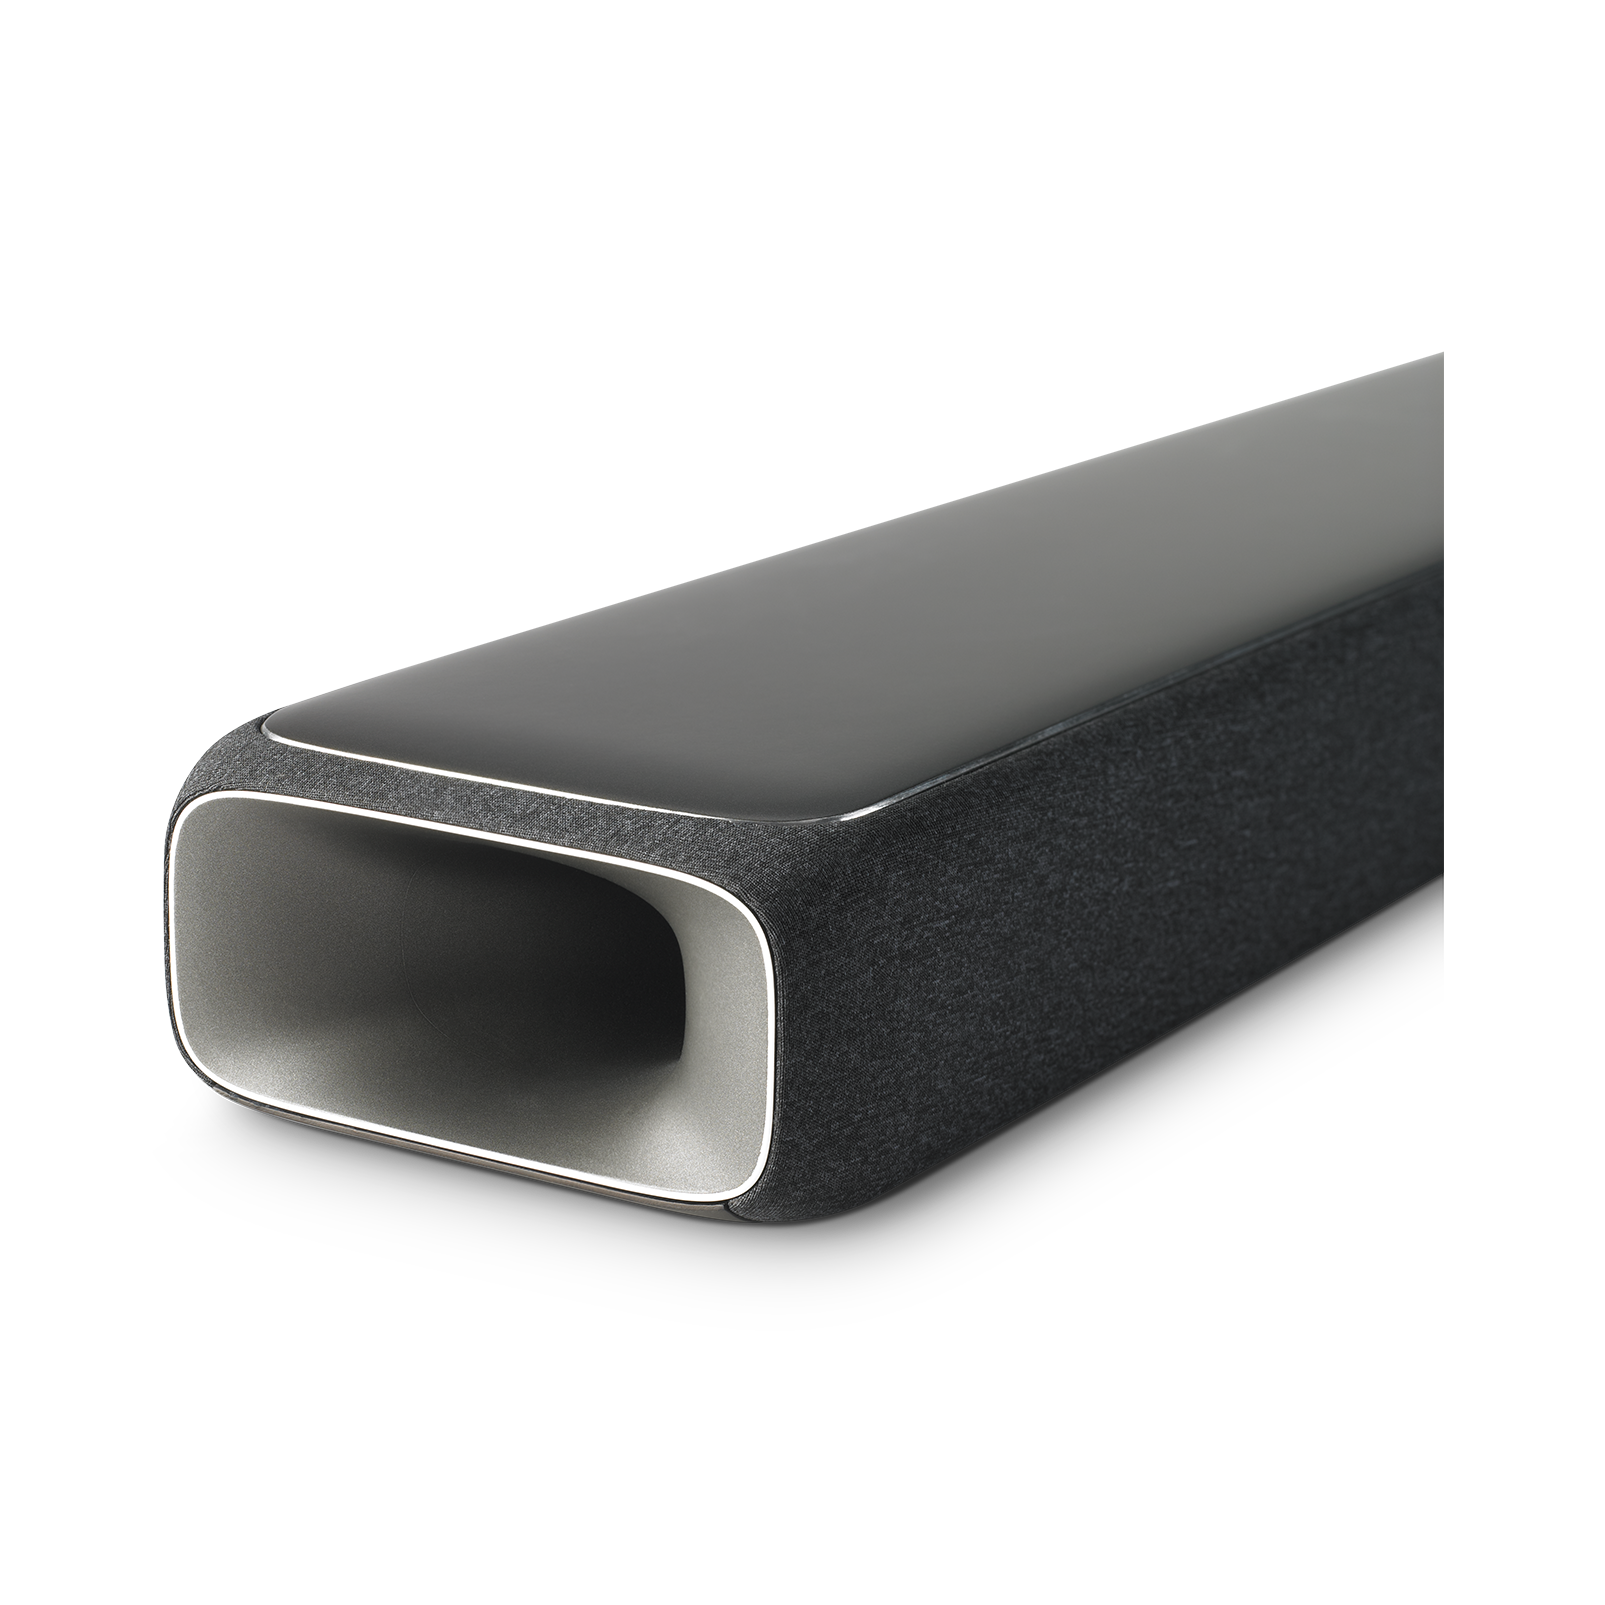 Enchant 1300 - Graphite - All in One 13-Channel Soundbar with MultiBeam™ Surround Sound - Detailshot 1